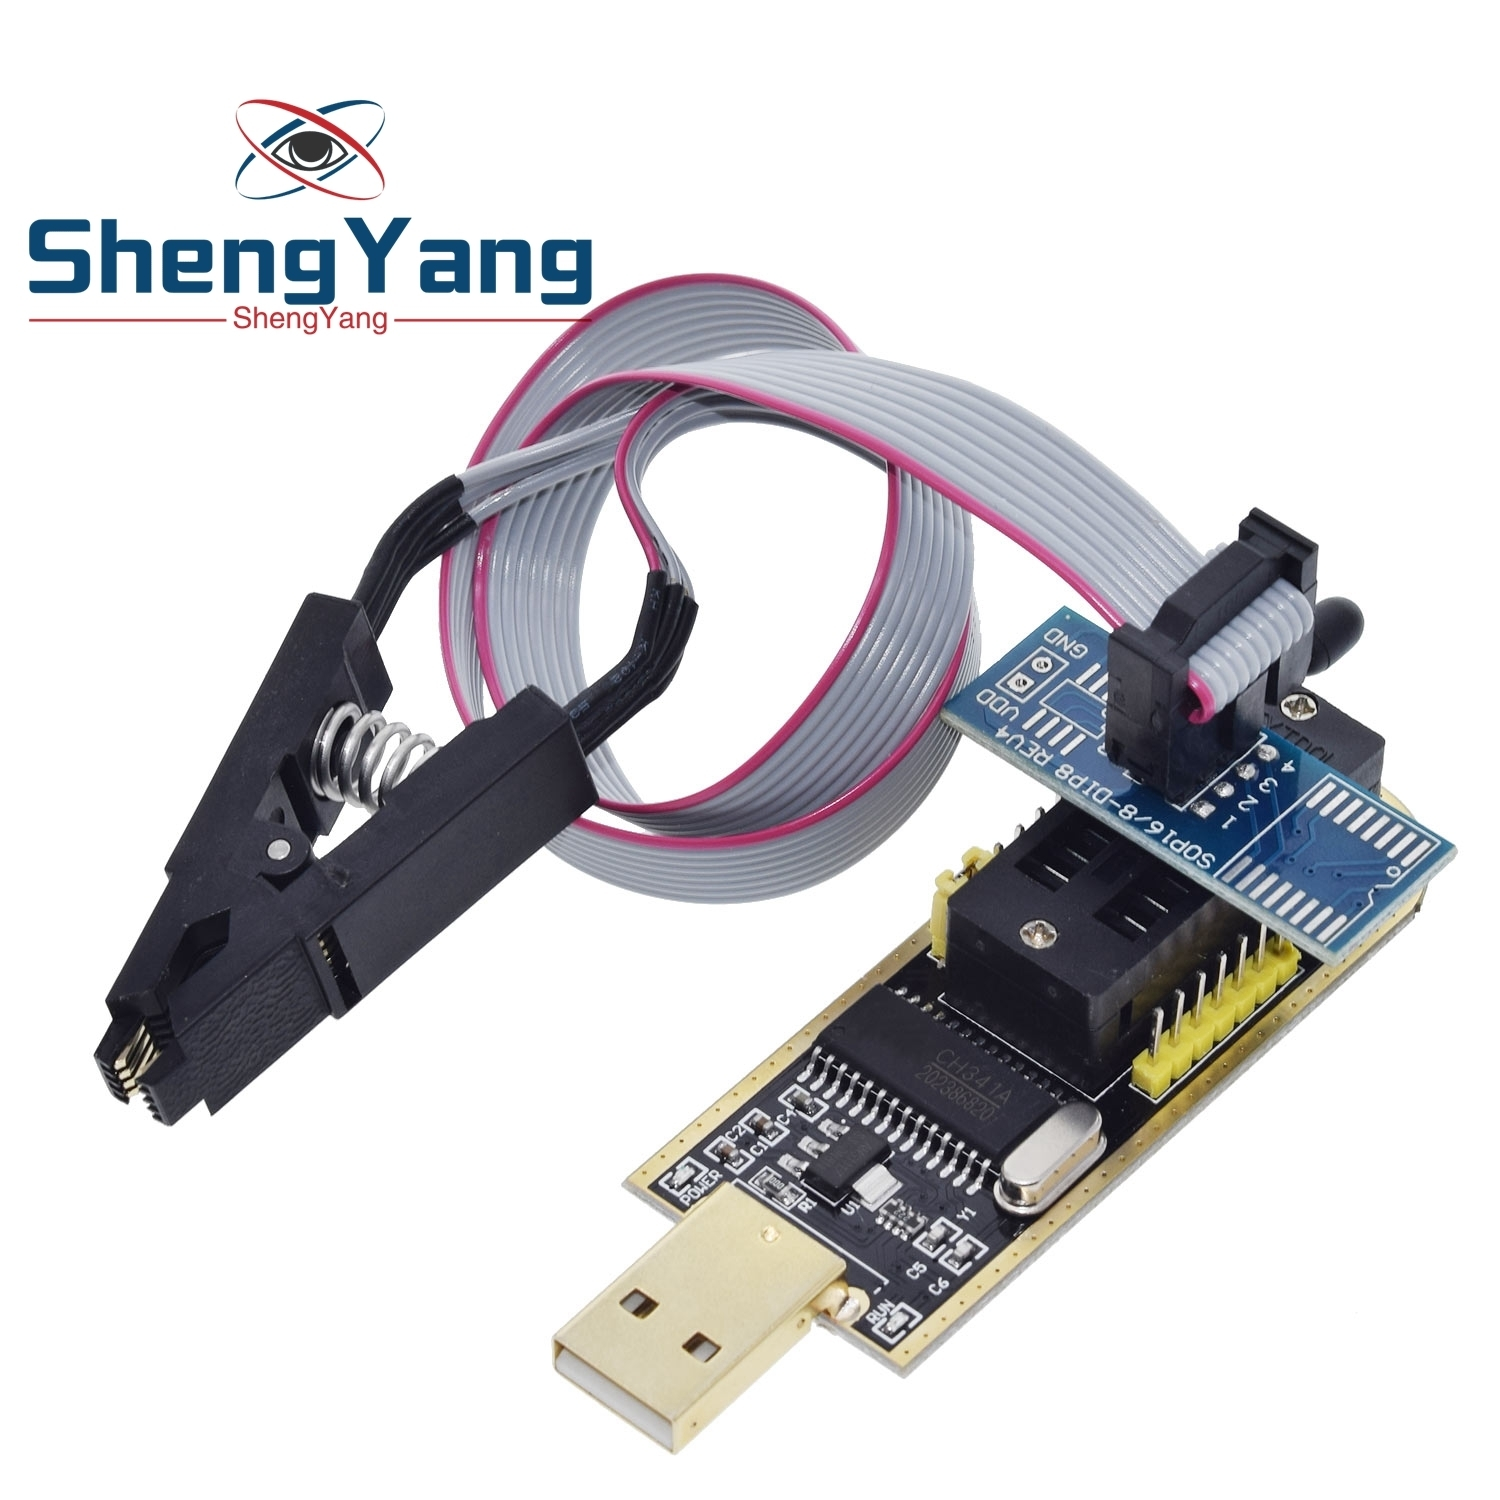 1pcs ShengYang Smart Electronics CH340 CH340G CH341 CH341A 24 25 Series EEPROM Flash BIOS USB Programmer with Software & Driver